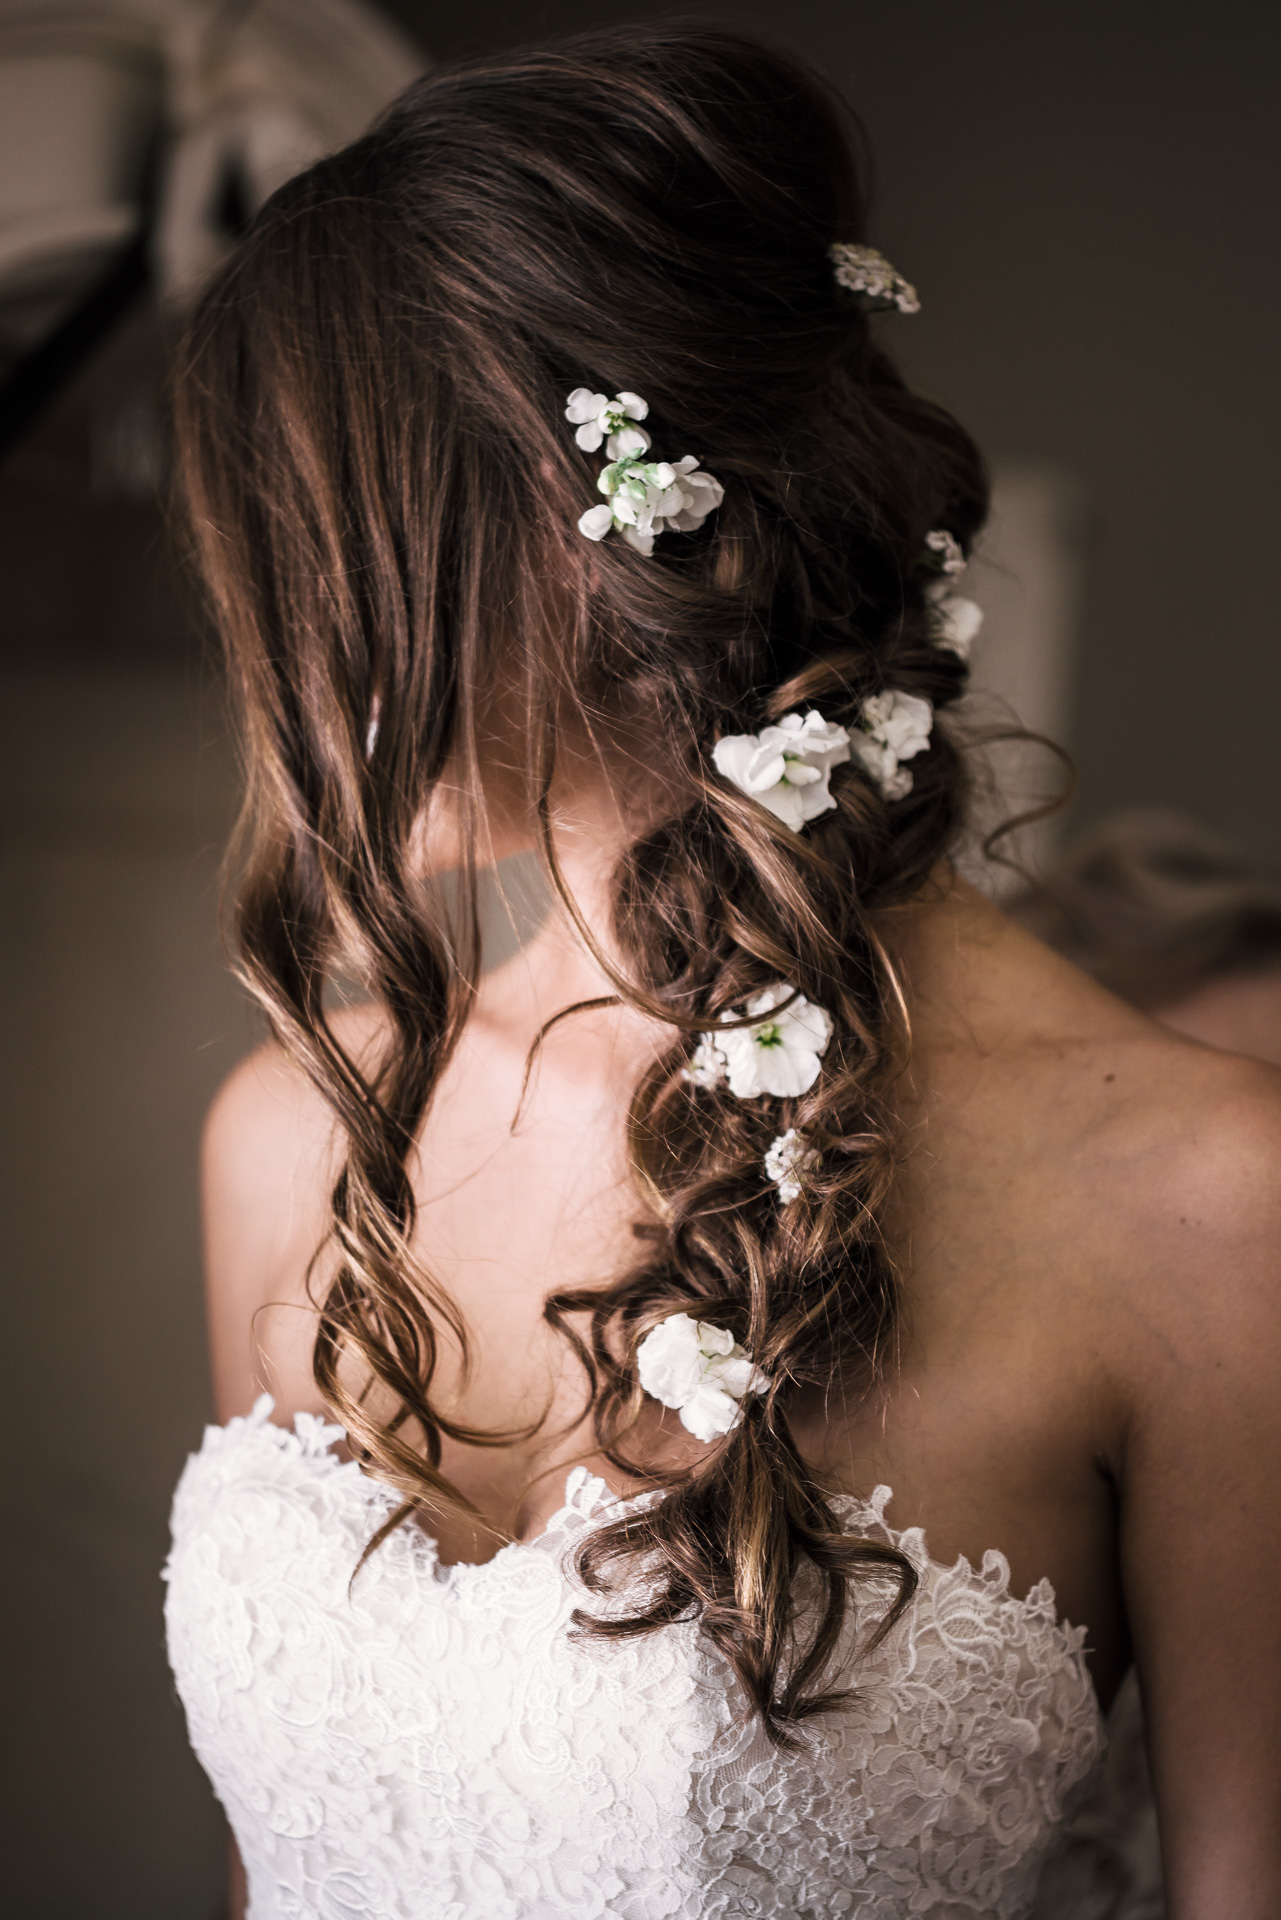 Bride in her wedding dress has flowers in her hair at the secret garden located at the Historic Parish ranch in Oak Glen California